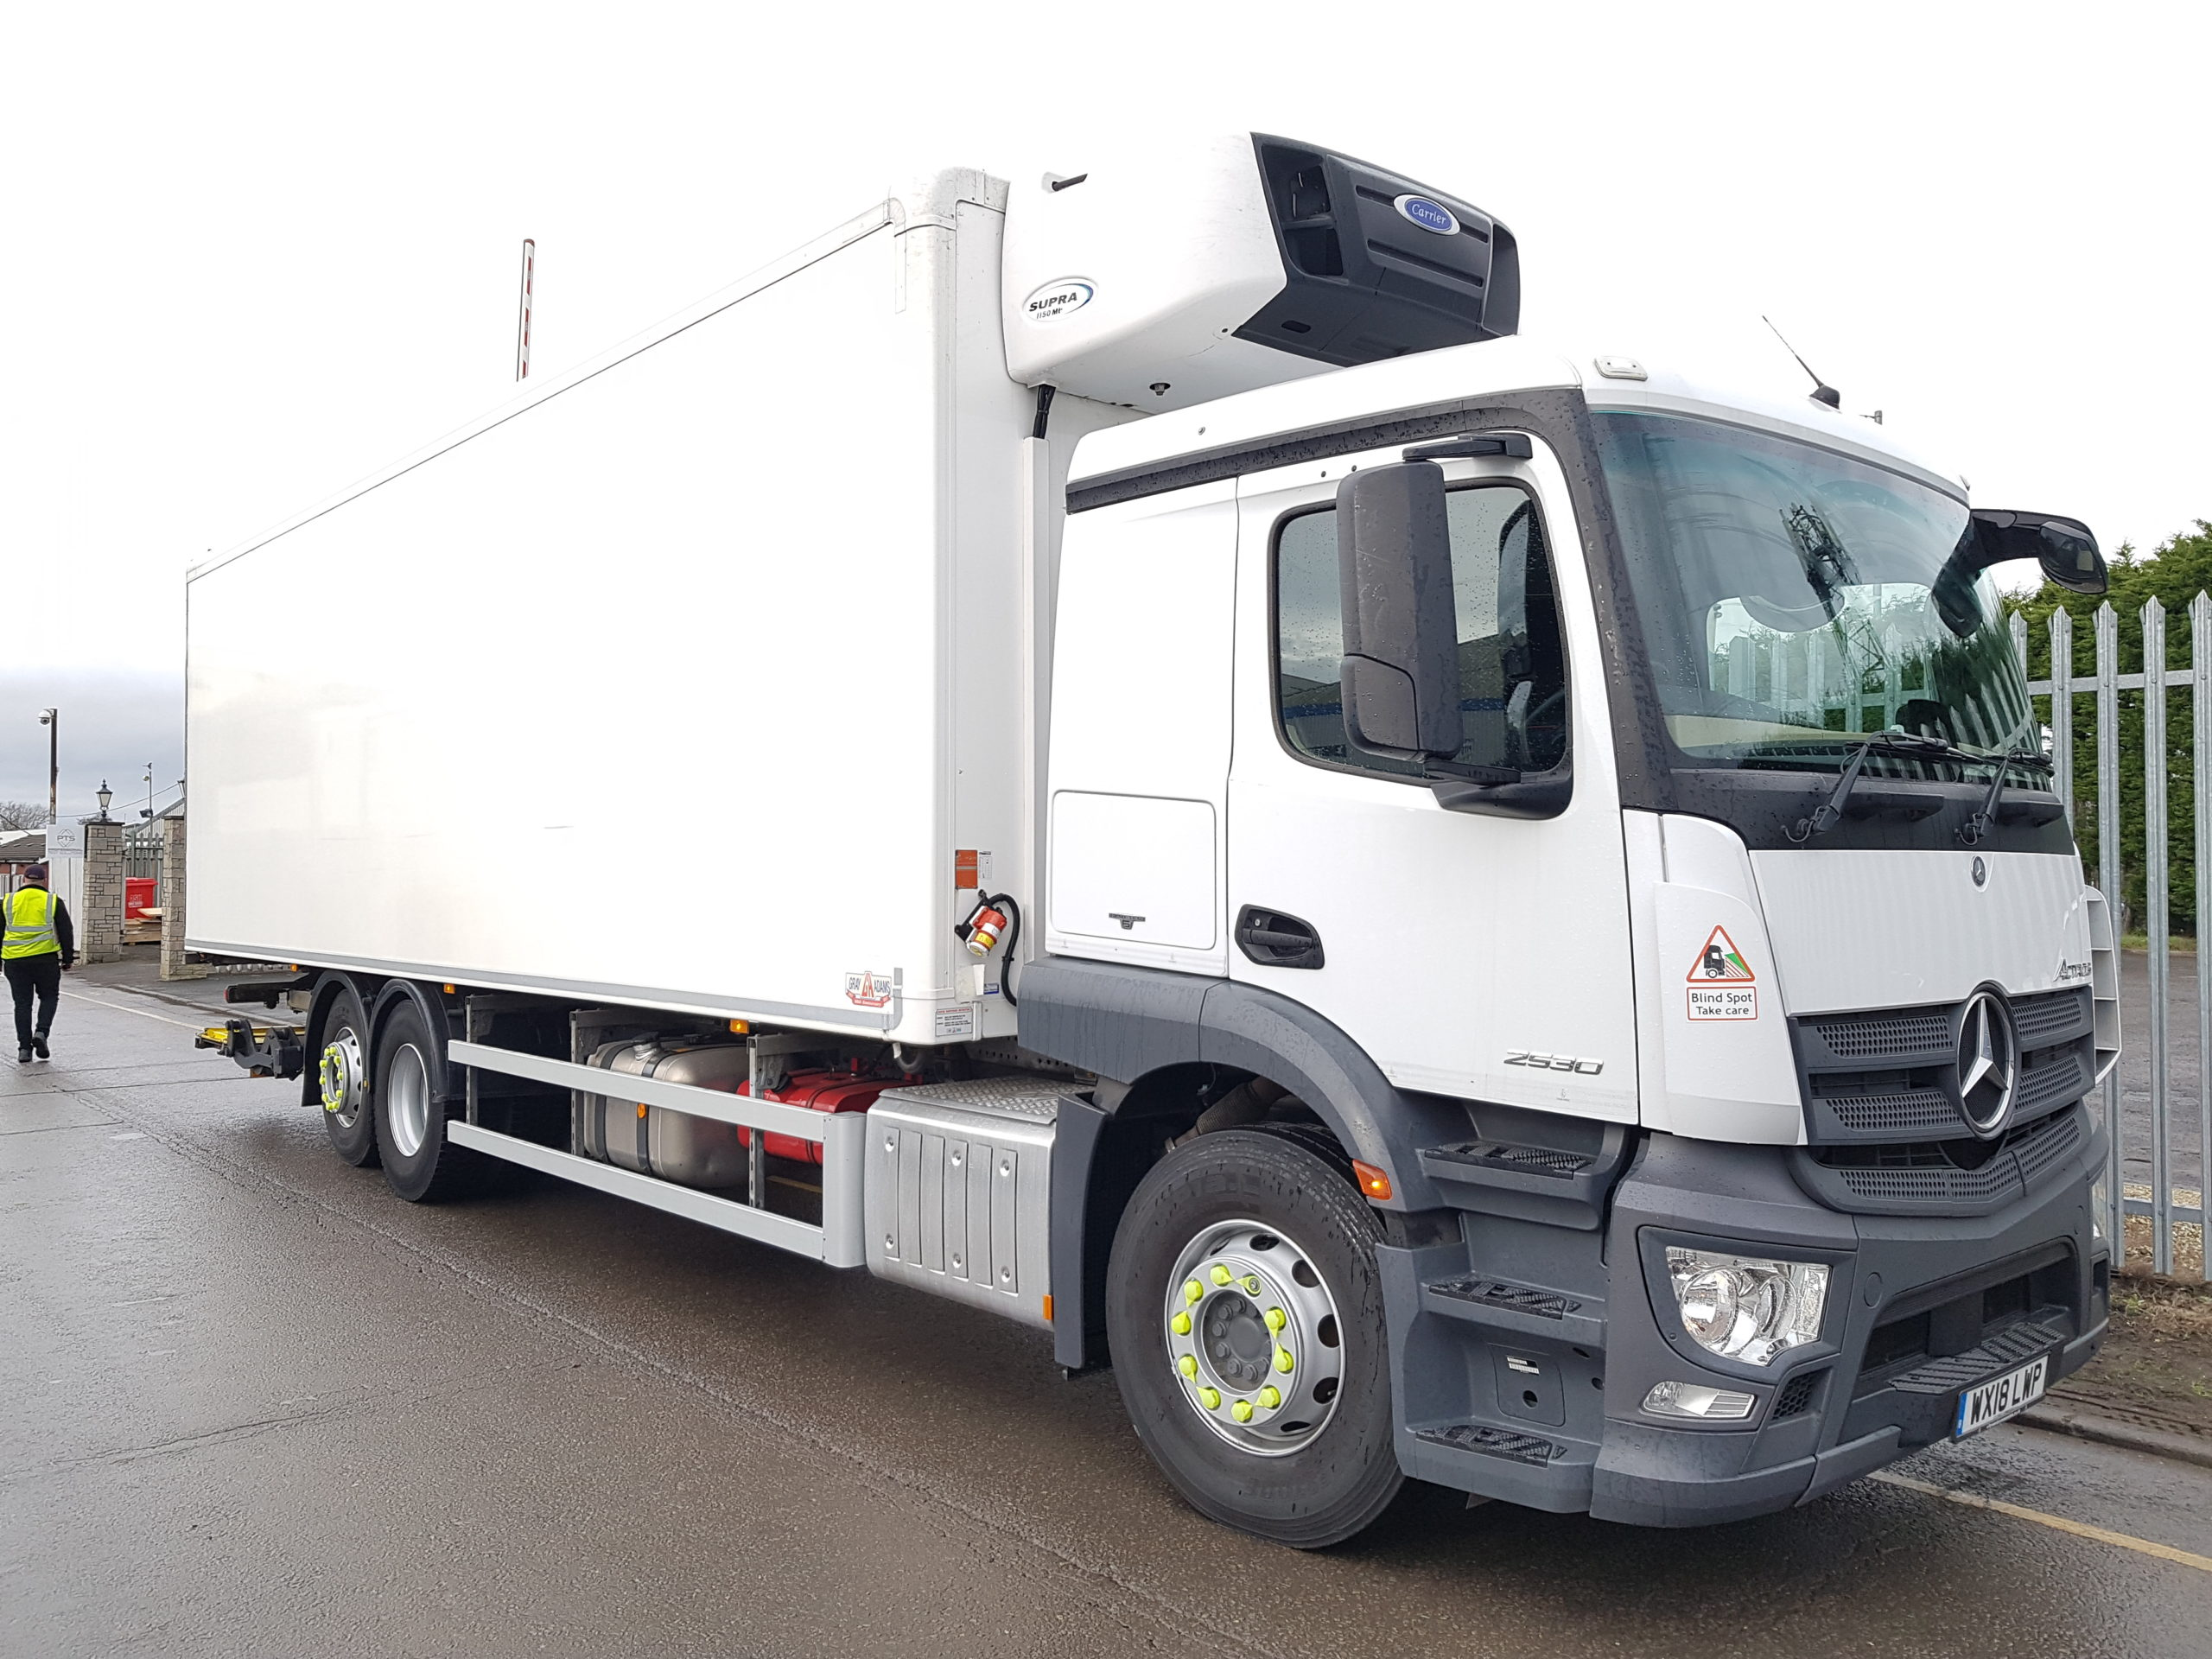 2018 Mercedes Actros Fridge, 26 Tonne, Carrier Supra 1150 Engine, Dhollandia Tuckunder Tailift (2000KG Capacity), Single Sleeper Cab, Euro 6, Automatic Gearbox, 300bhp, ONLY 89,332km, Choice & Warranty Available.